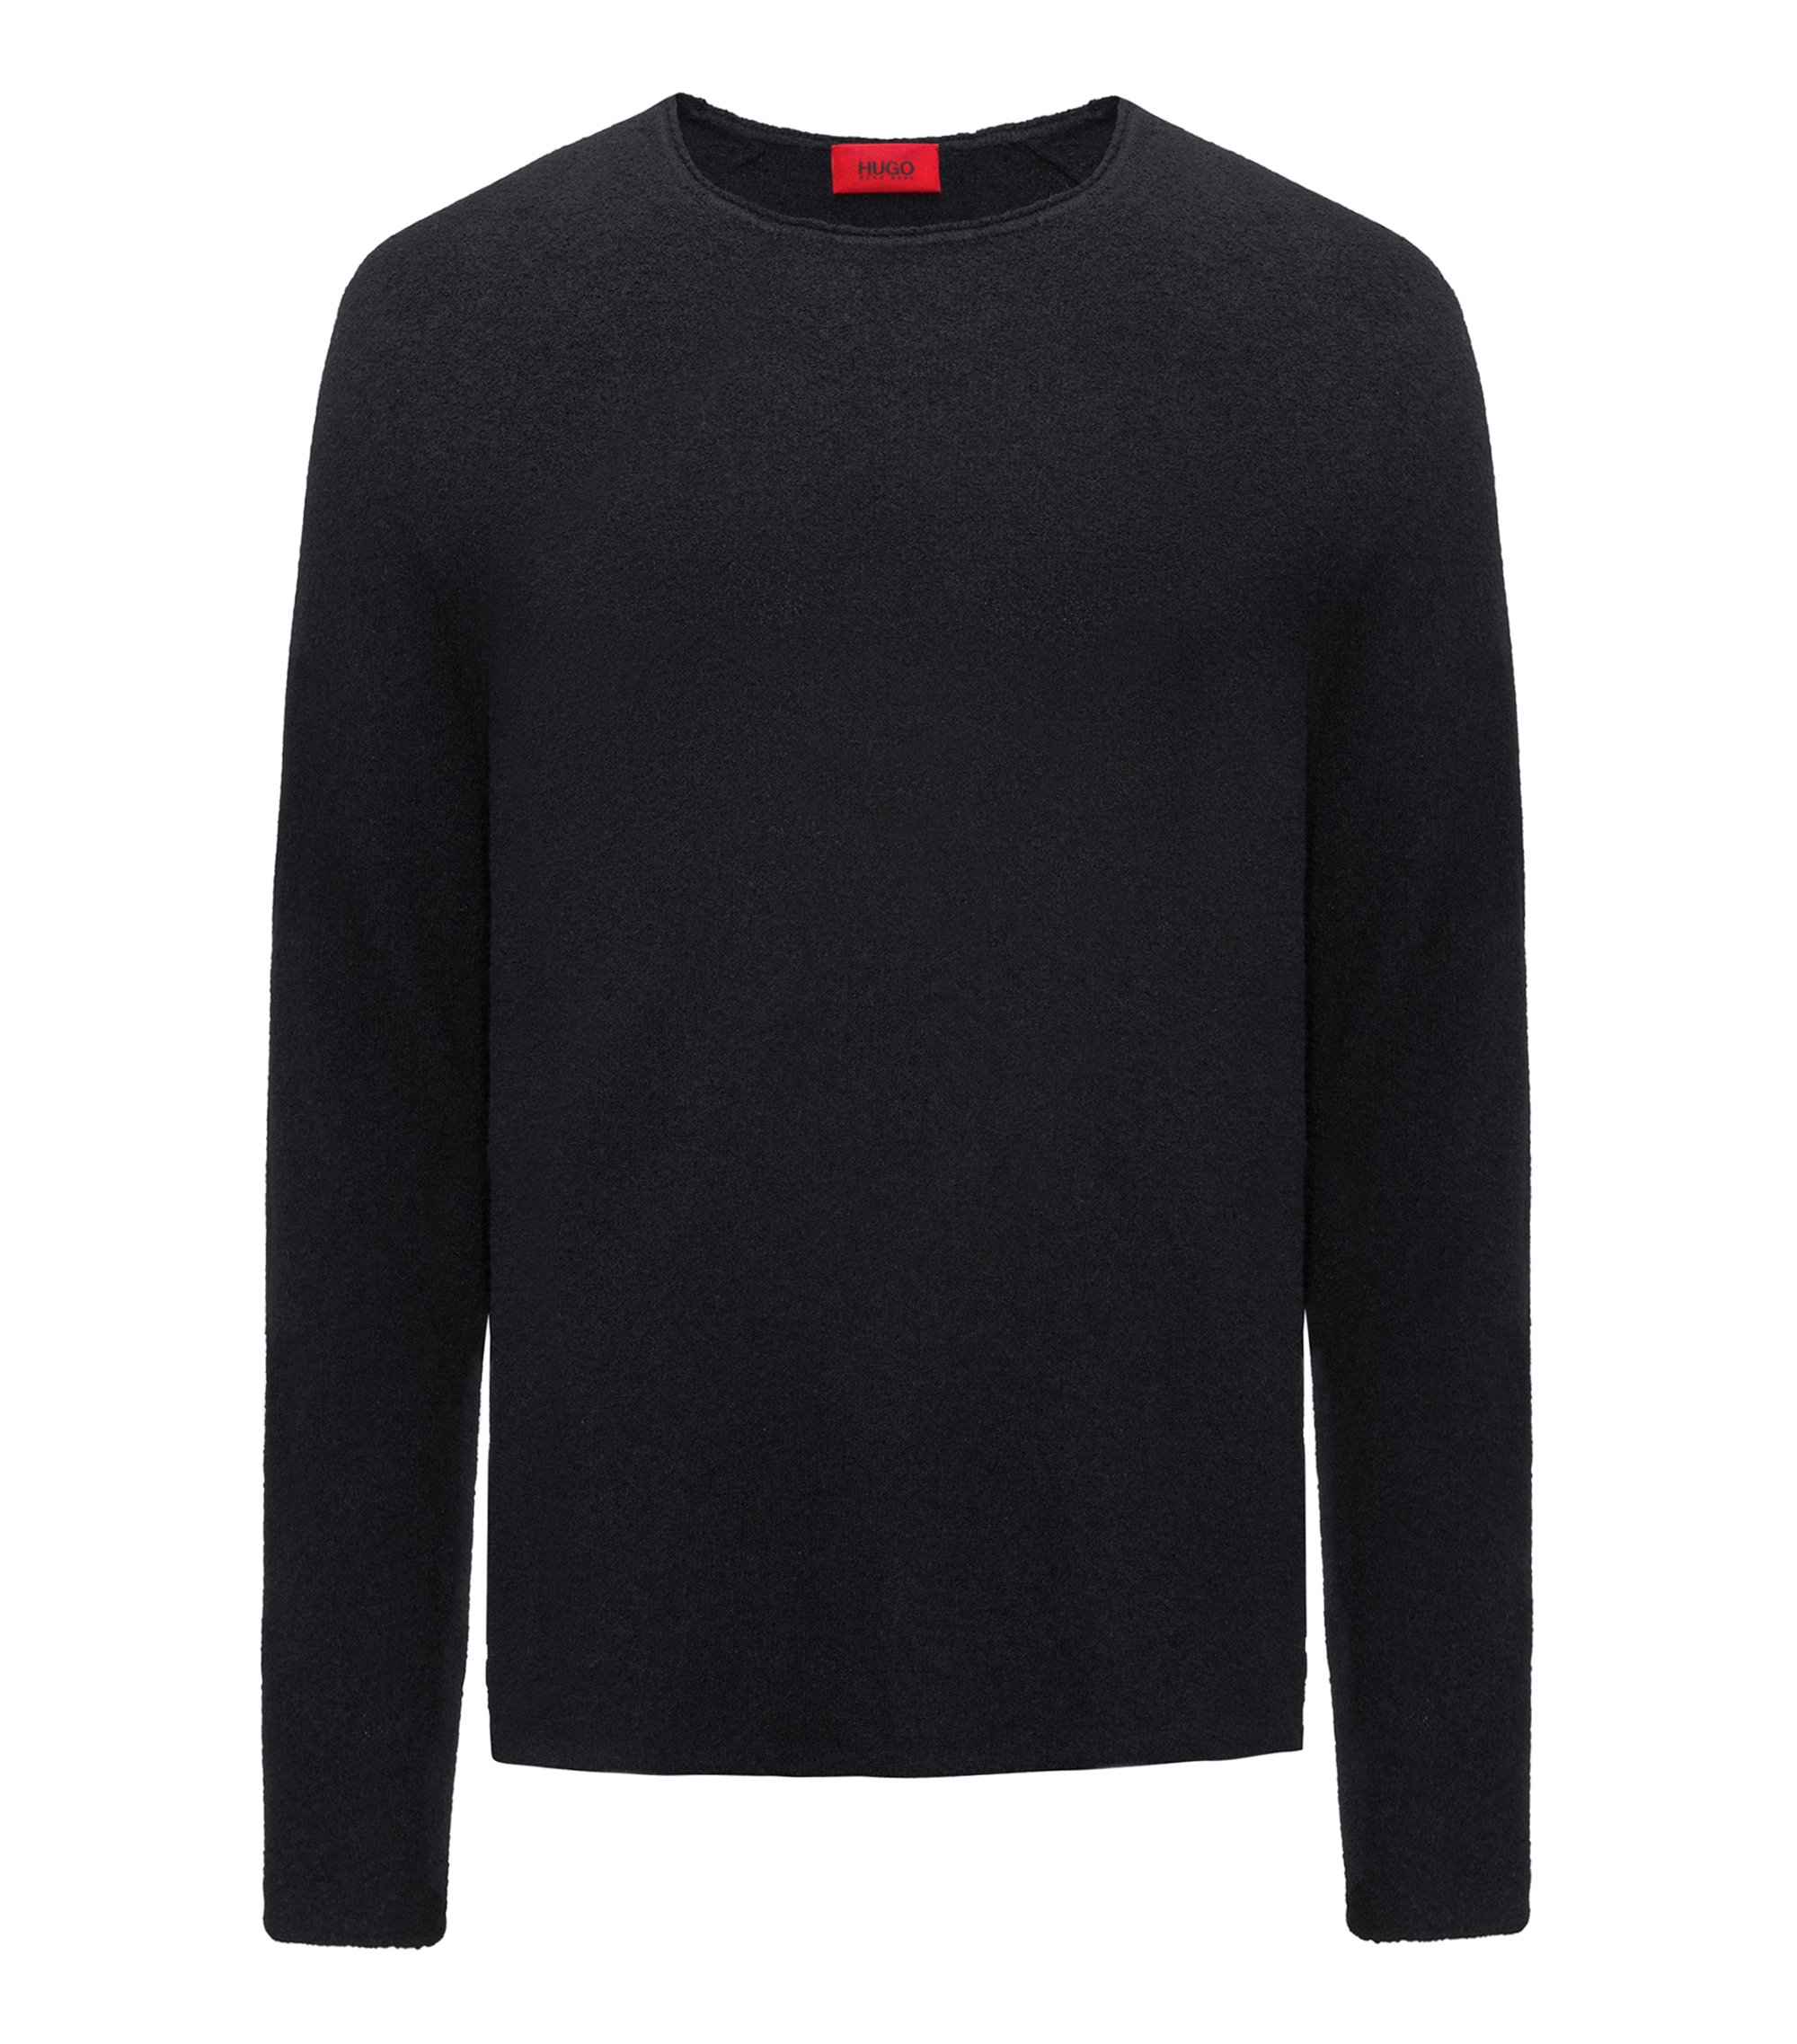 Cotton-blend sweater with terry structure, Black